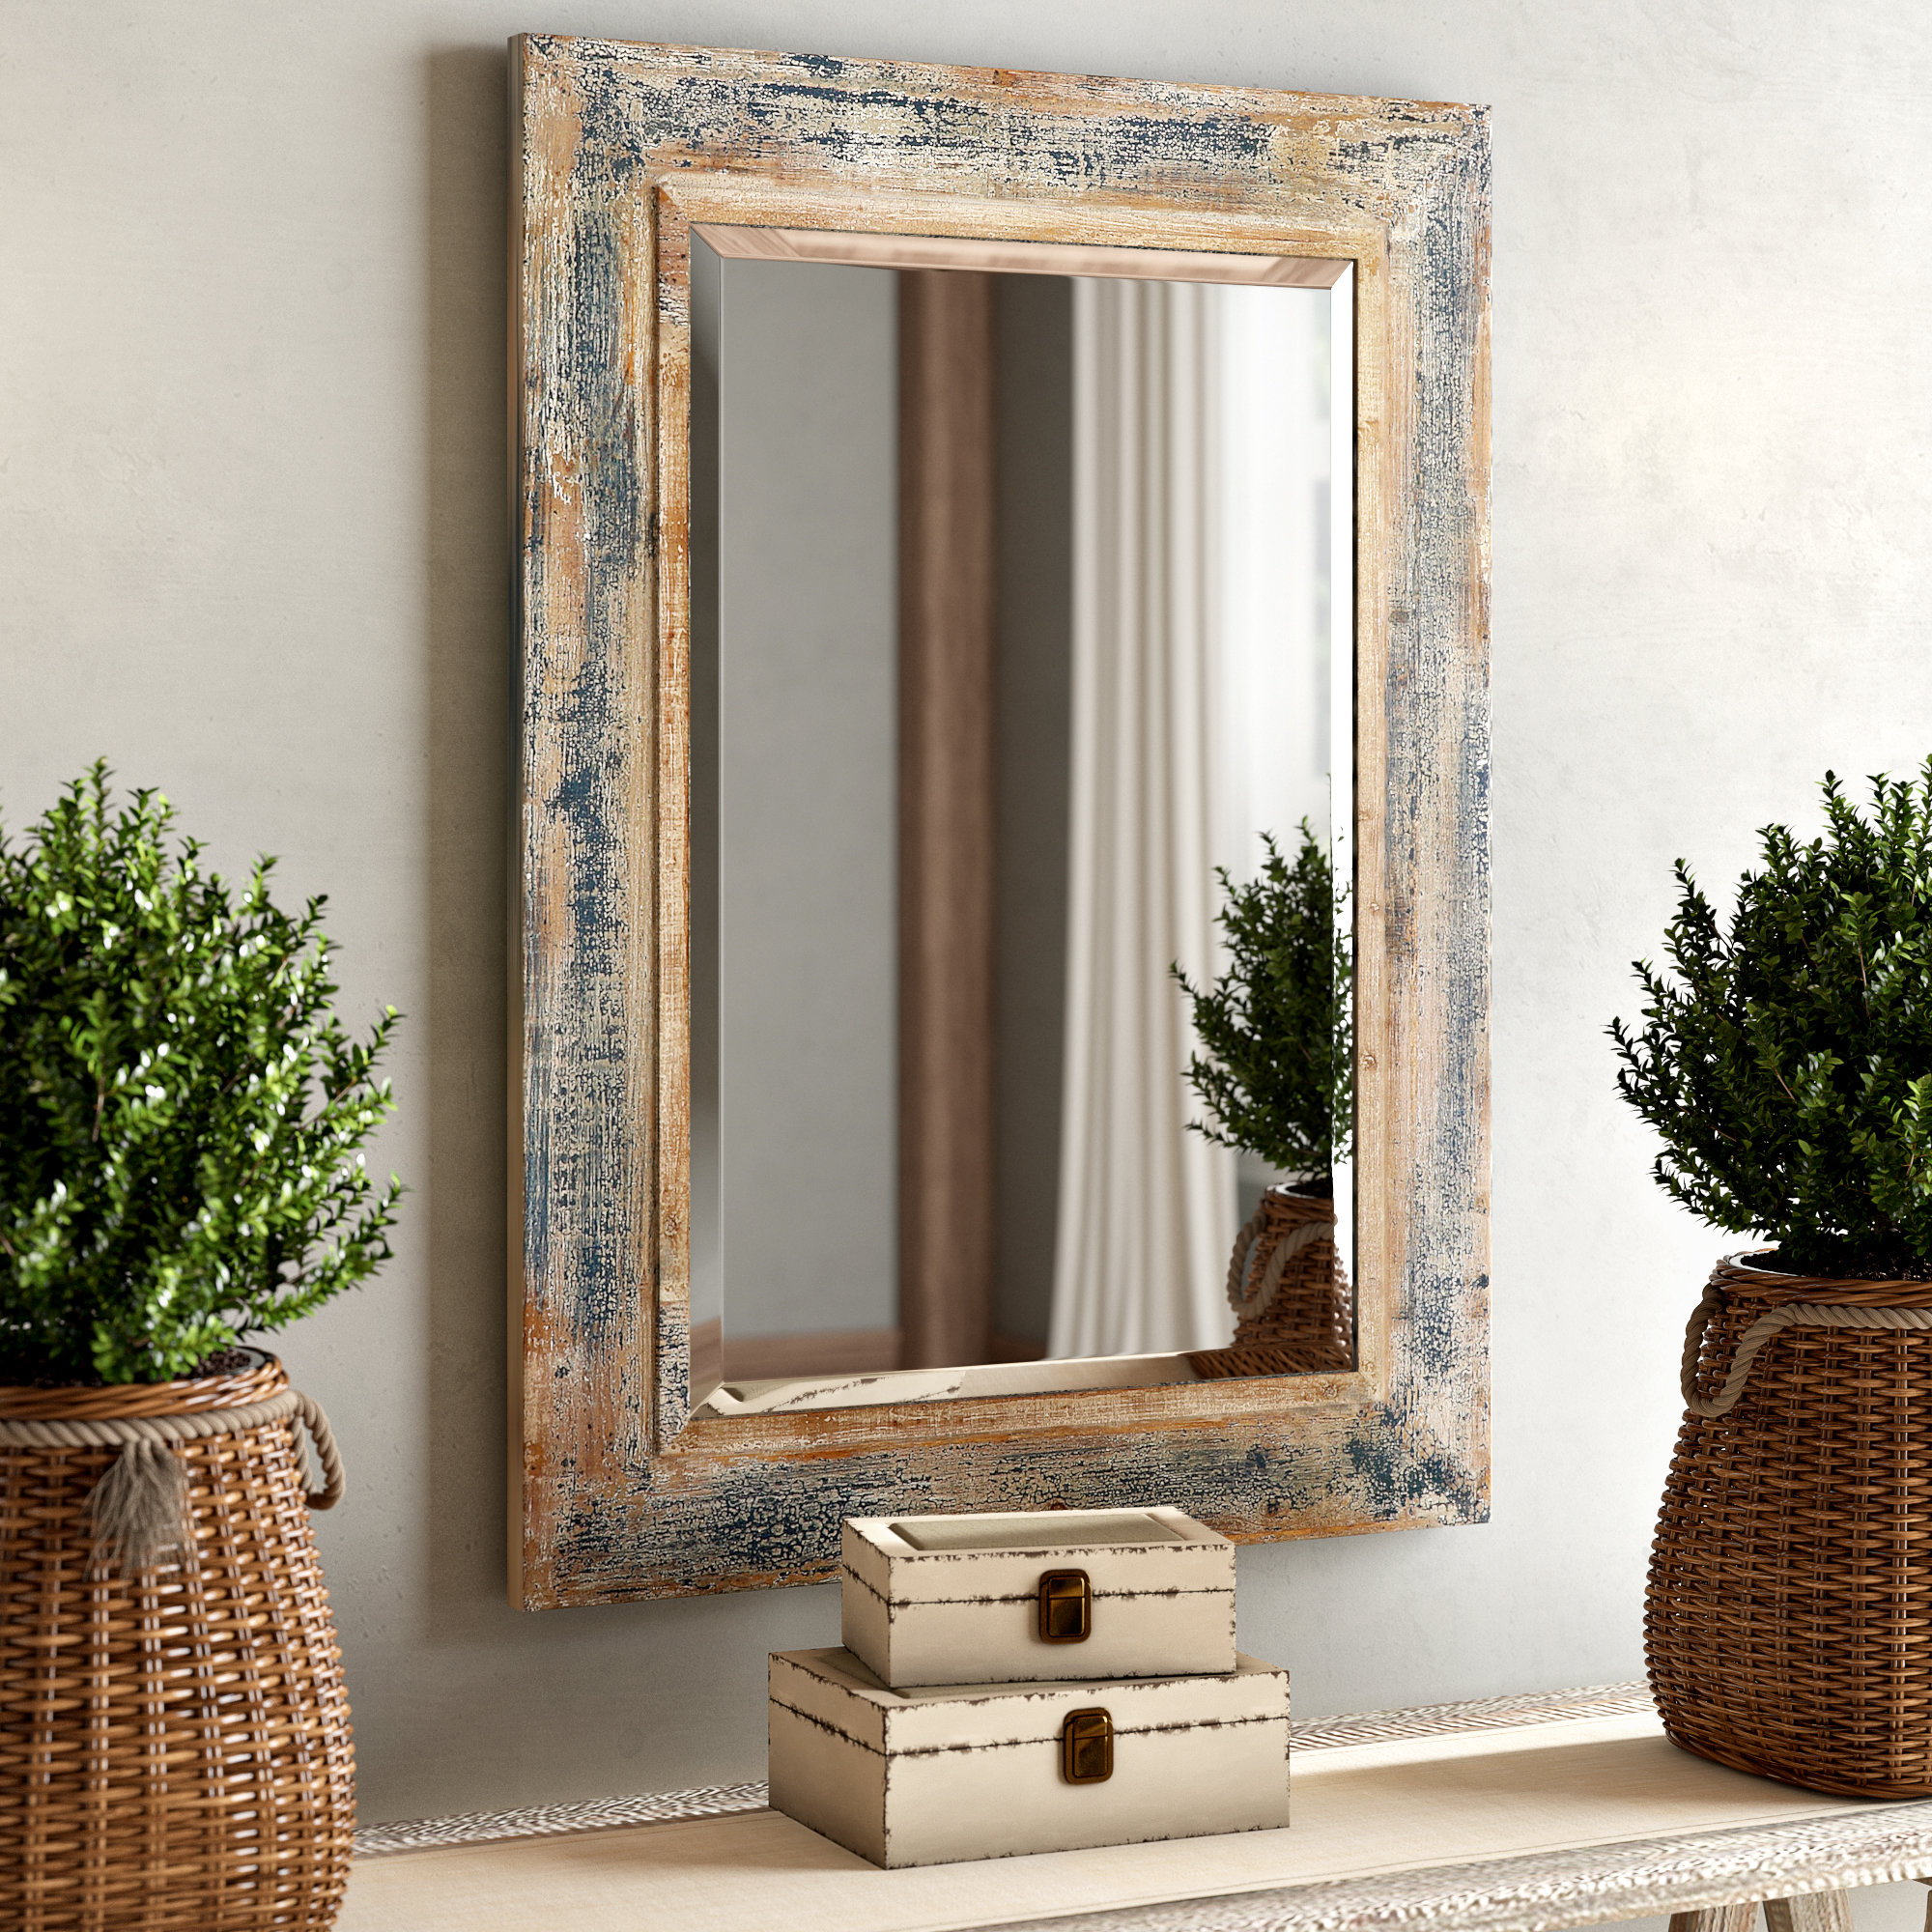 Dining Room Wall Mirror | Wayfair For Marion Wall Mirrors (Image 5 of 20)